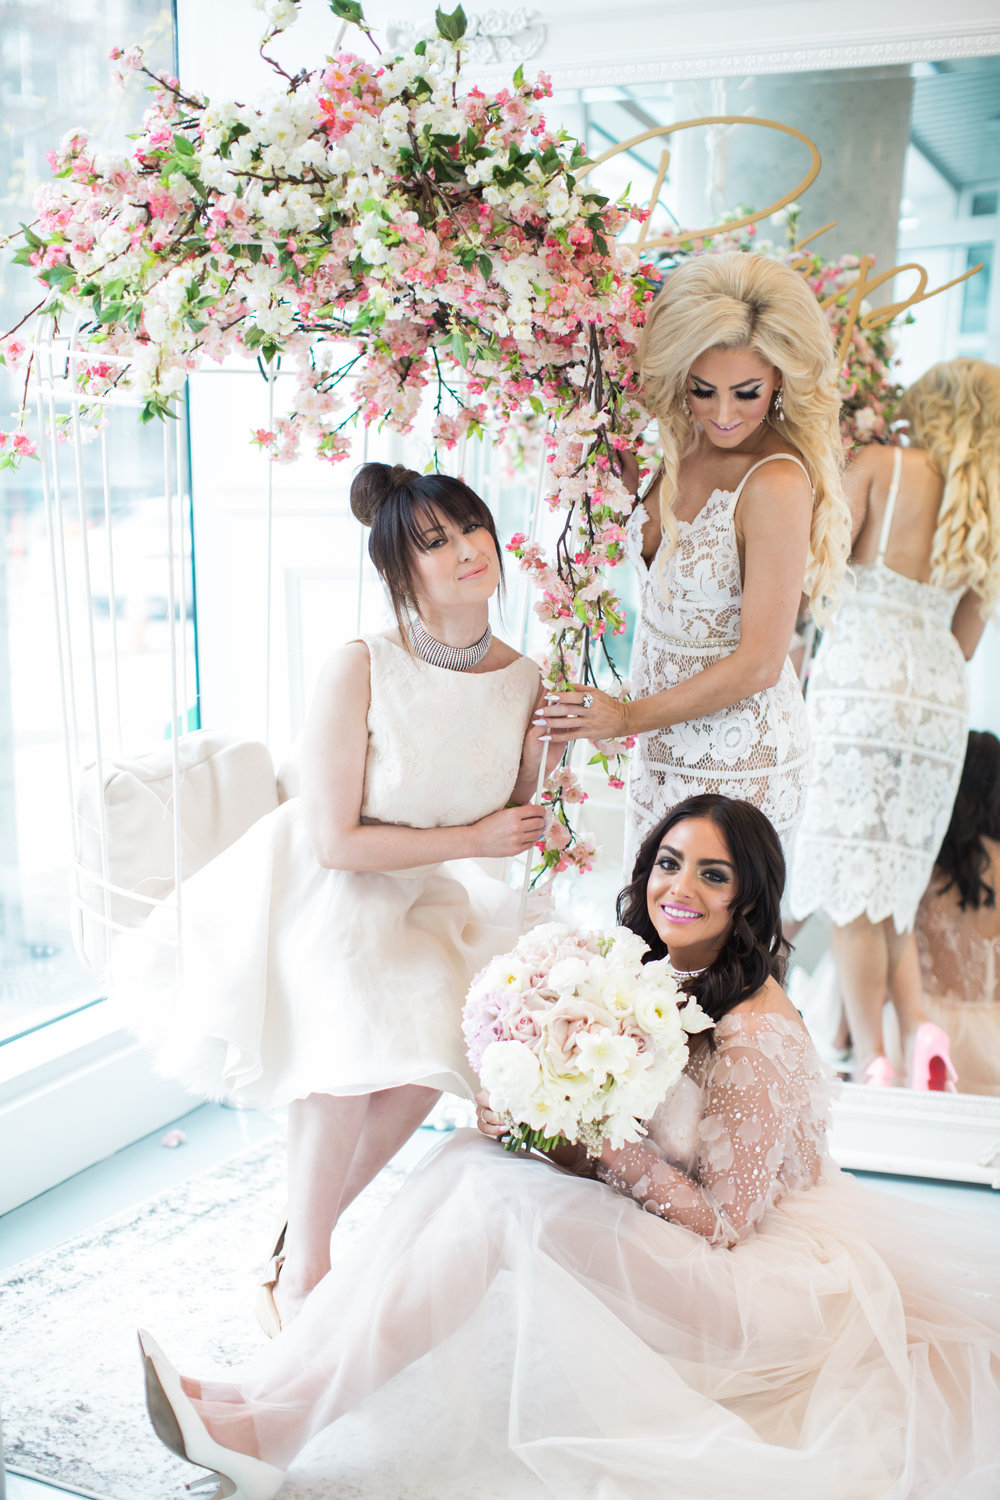 Cherry Blossom Inspired Photo Shoot Vancouver, Denise Lin, Elsa Corsi